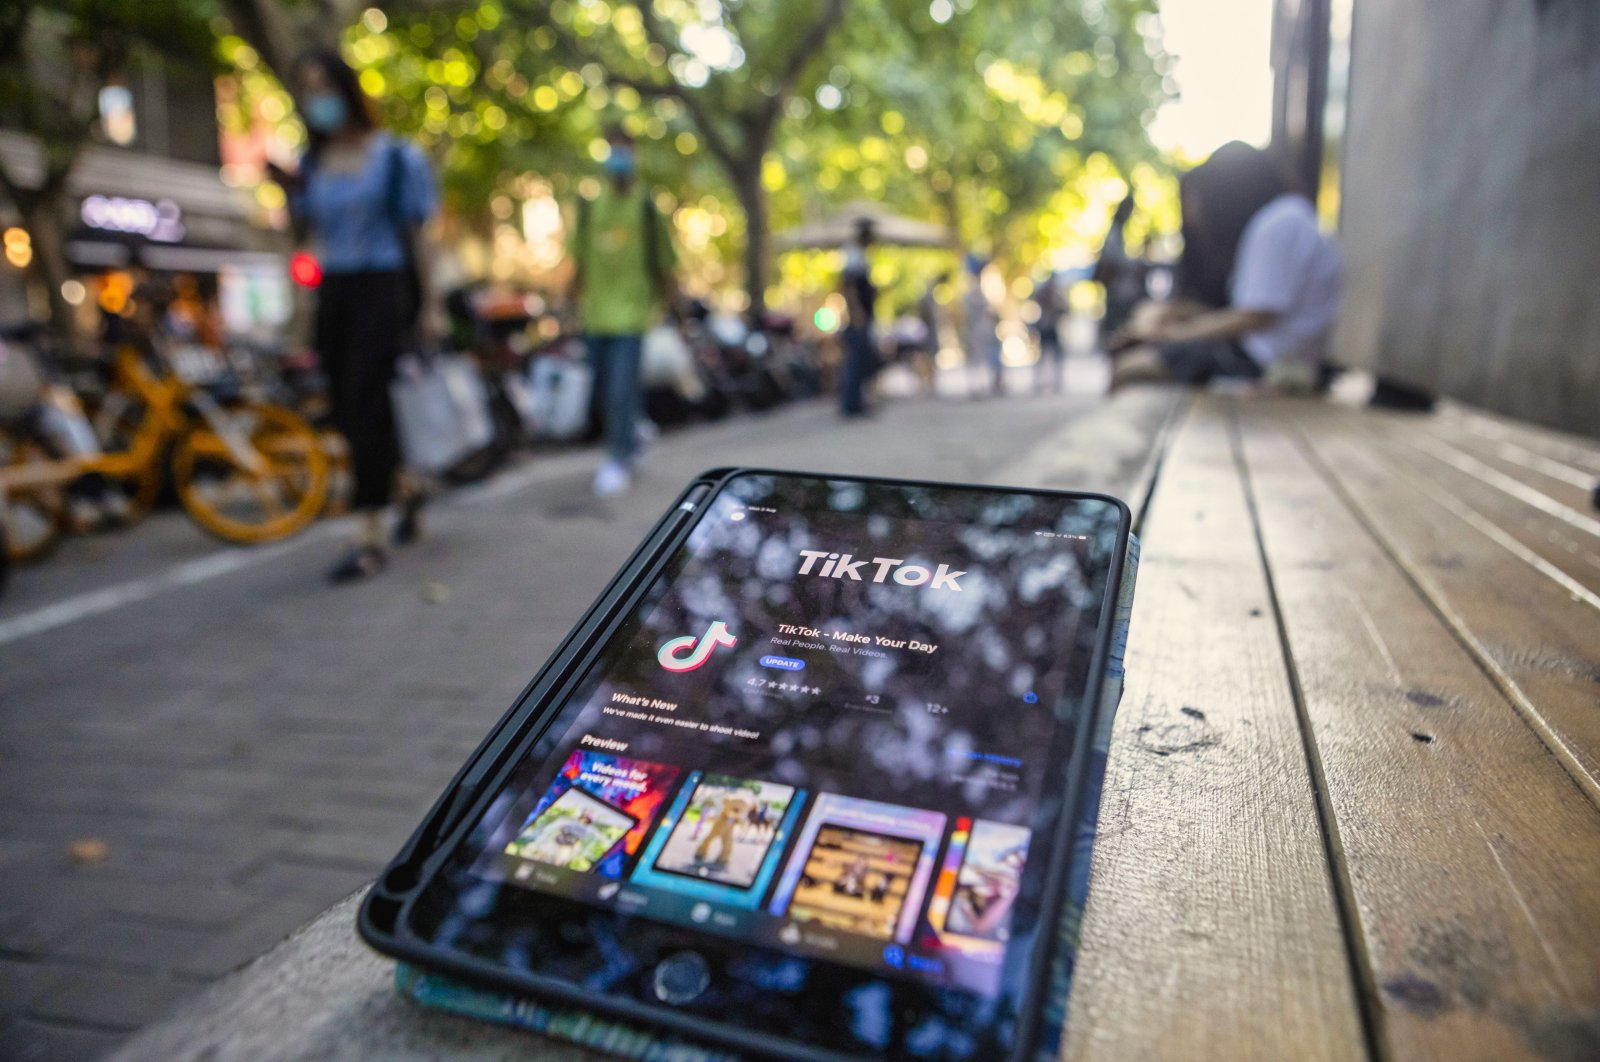 A TikTok app is seen on the tablet in Shanghai, China, 03 August 2020. (EPA Photo)